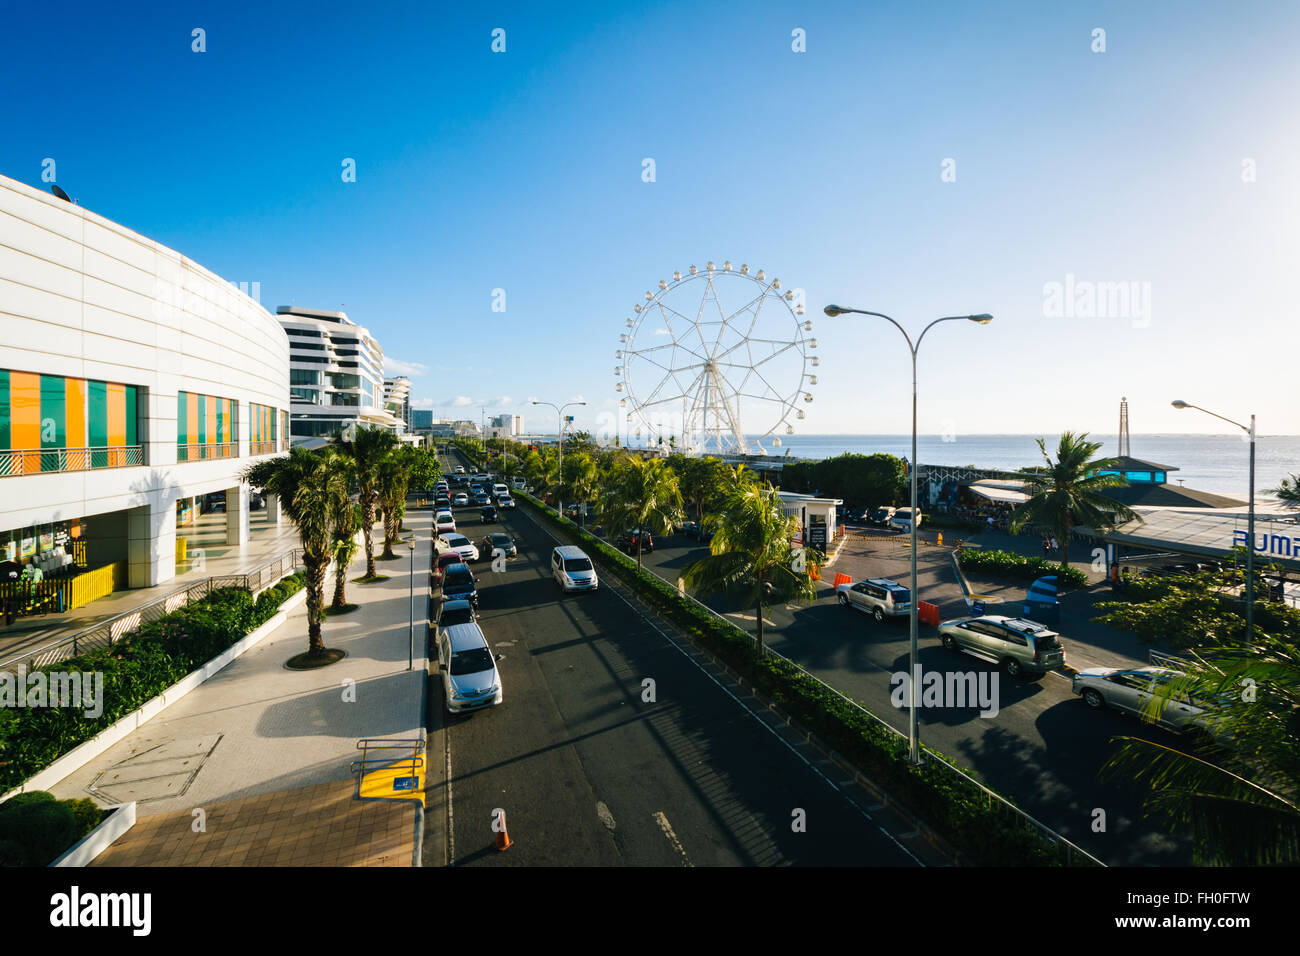 The exterior of the Mall of Asia and ferris wheel, in Pasay, Metro Manila, The Philippines. - Stock Image